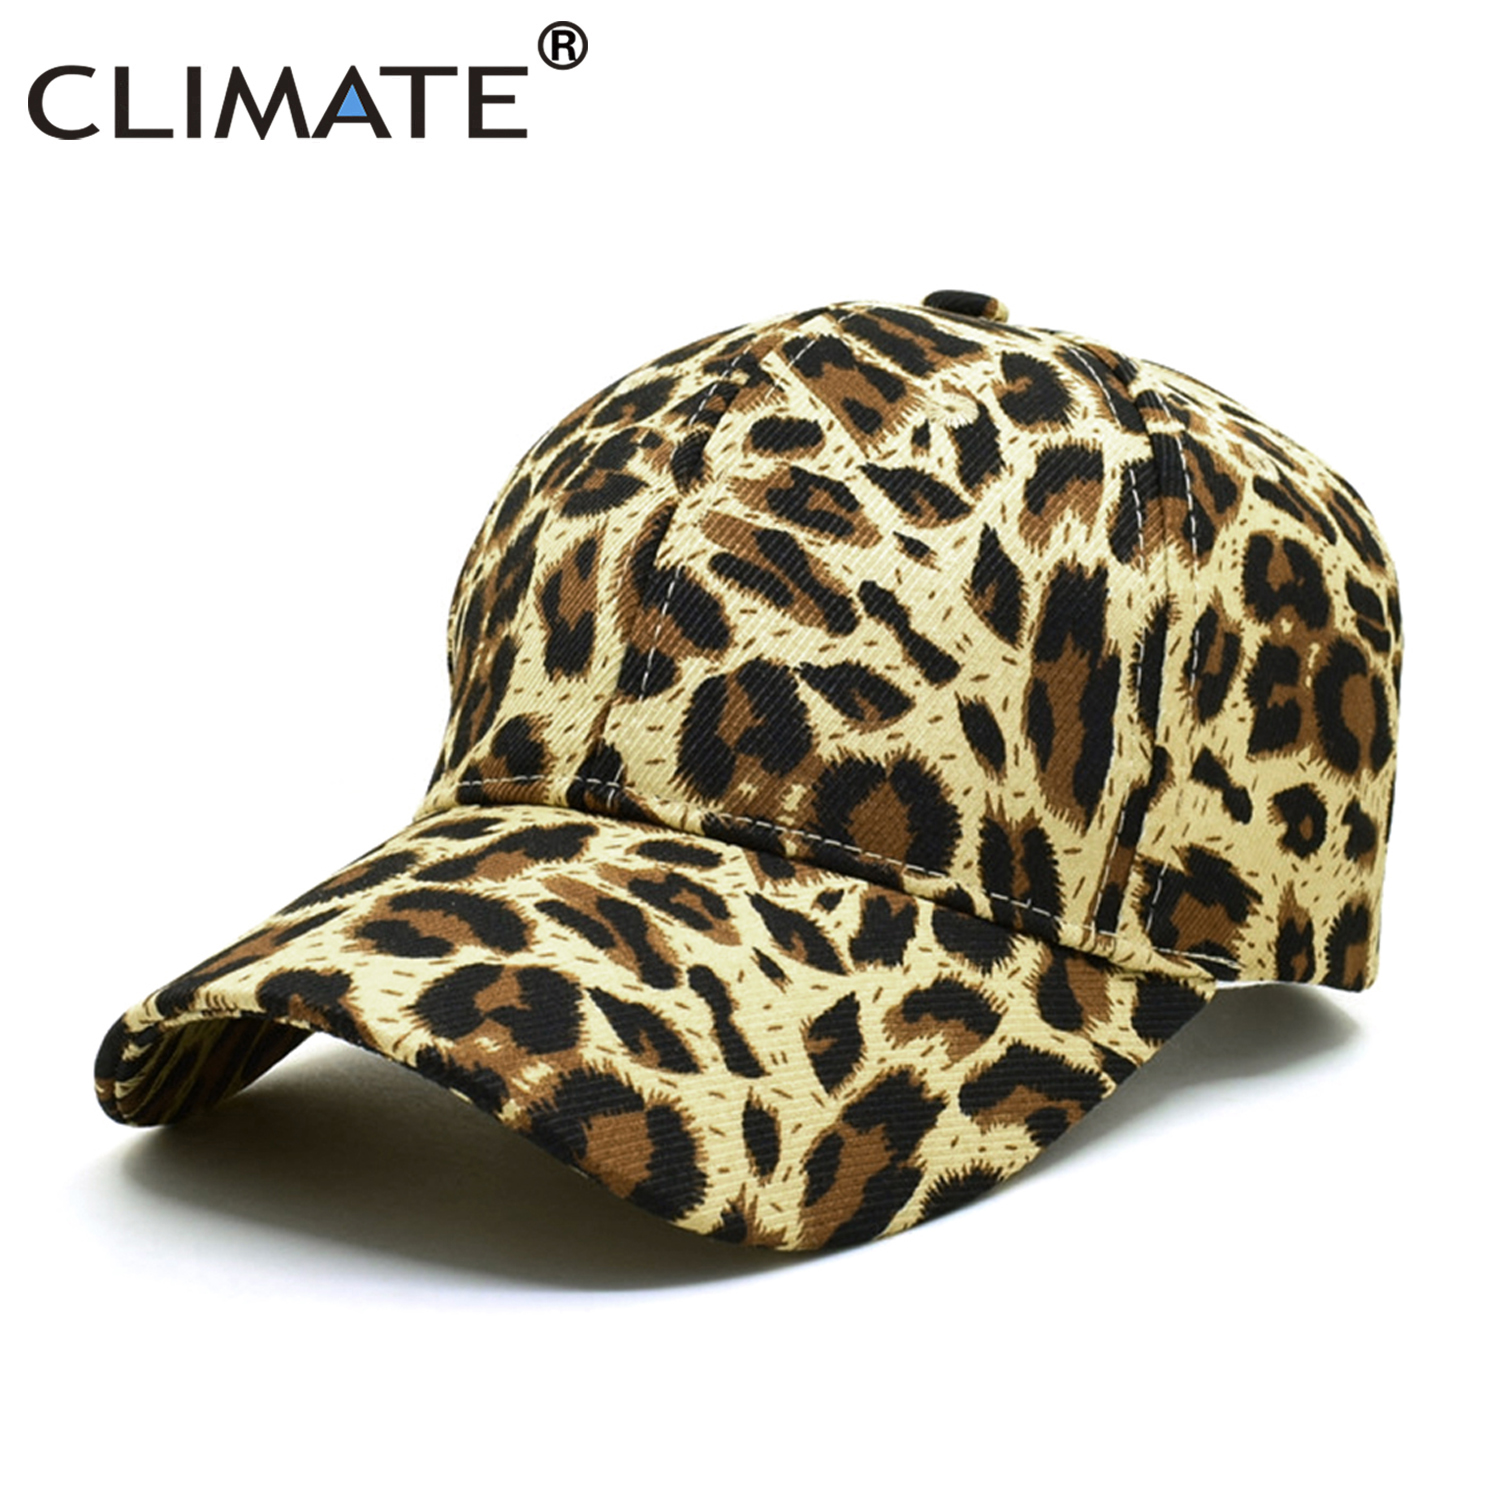 CLIMATE Fashion Leopard <font><b>Cap</b></font> Hat Women Woman New Fashion <font><b>Caps</b></font> Leopard Print Baseball <font><b>Caps</b></font> <font><b>Sexy</b></font> Hat <font><b>Cap</b></font> for Woman Girls Party image